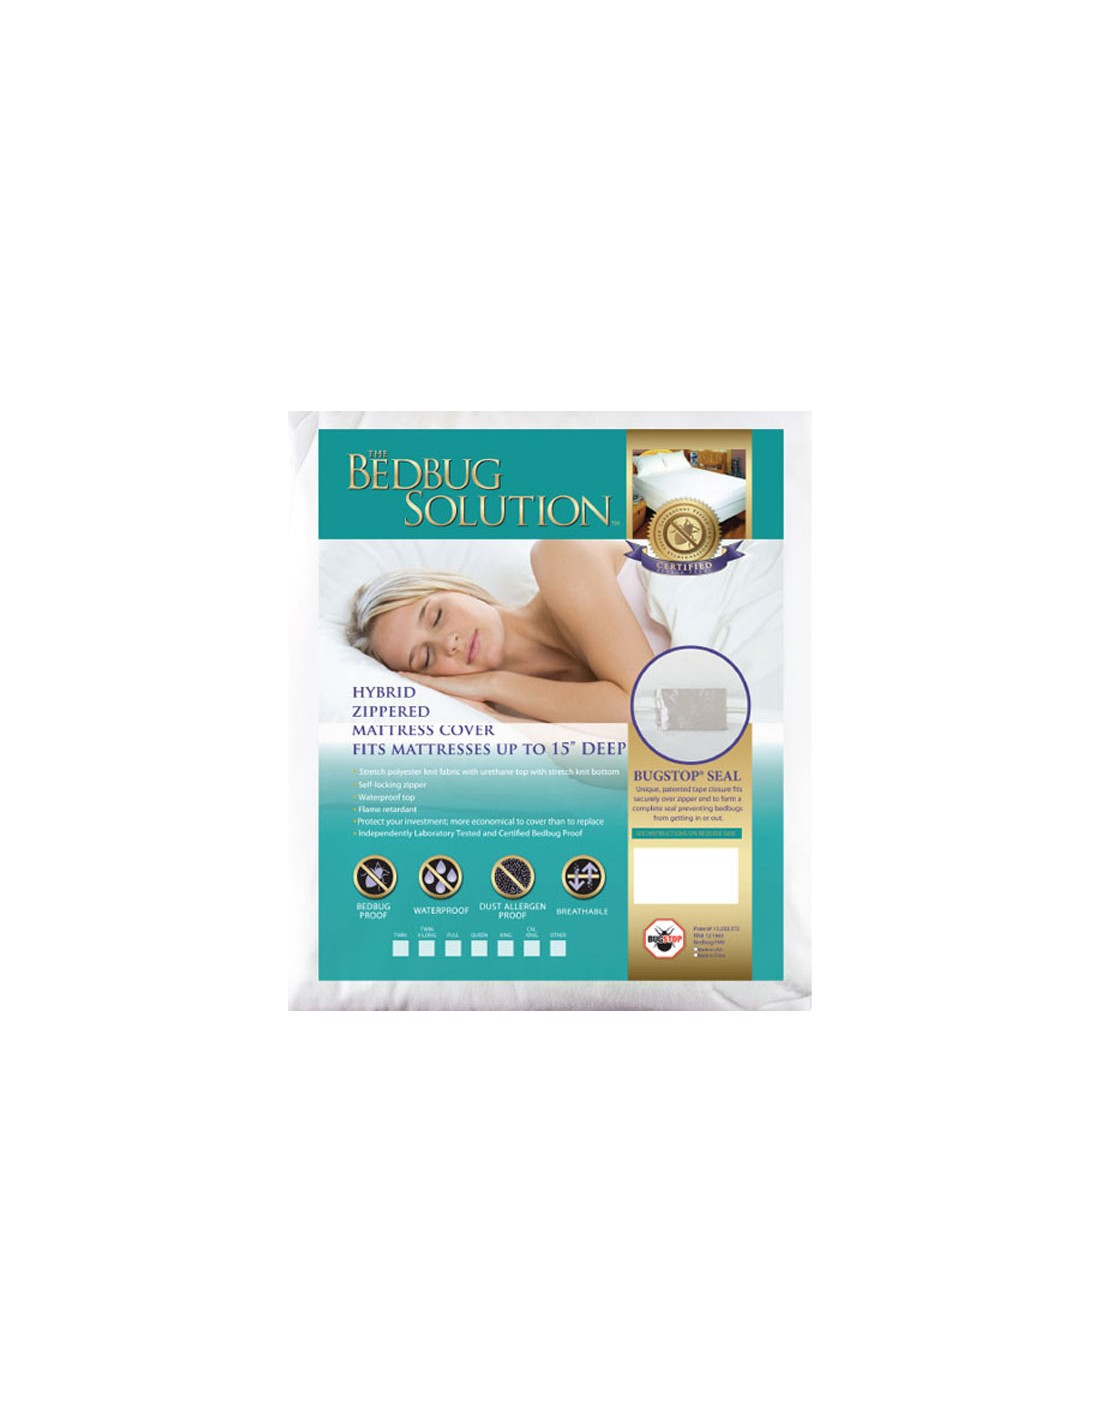 Dose this cover matress and box spring